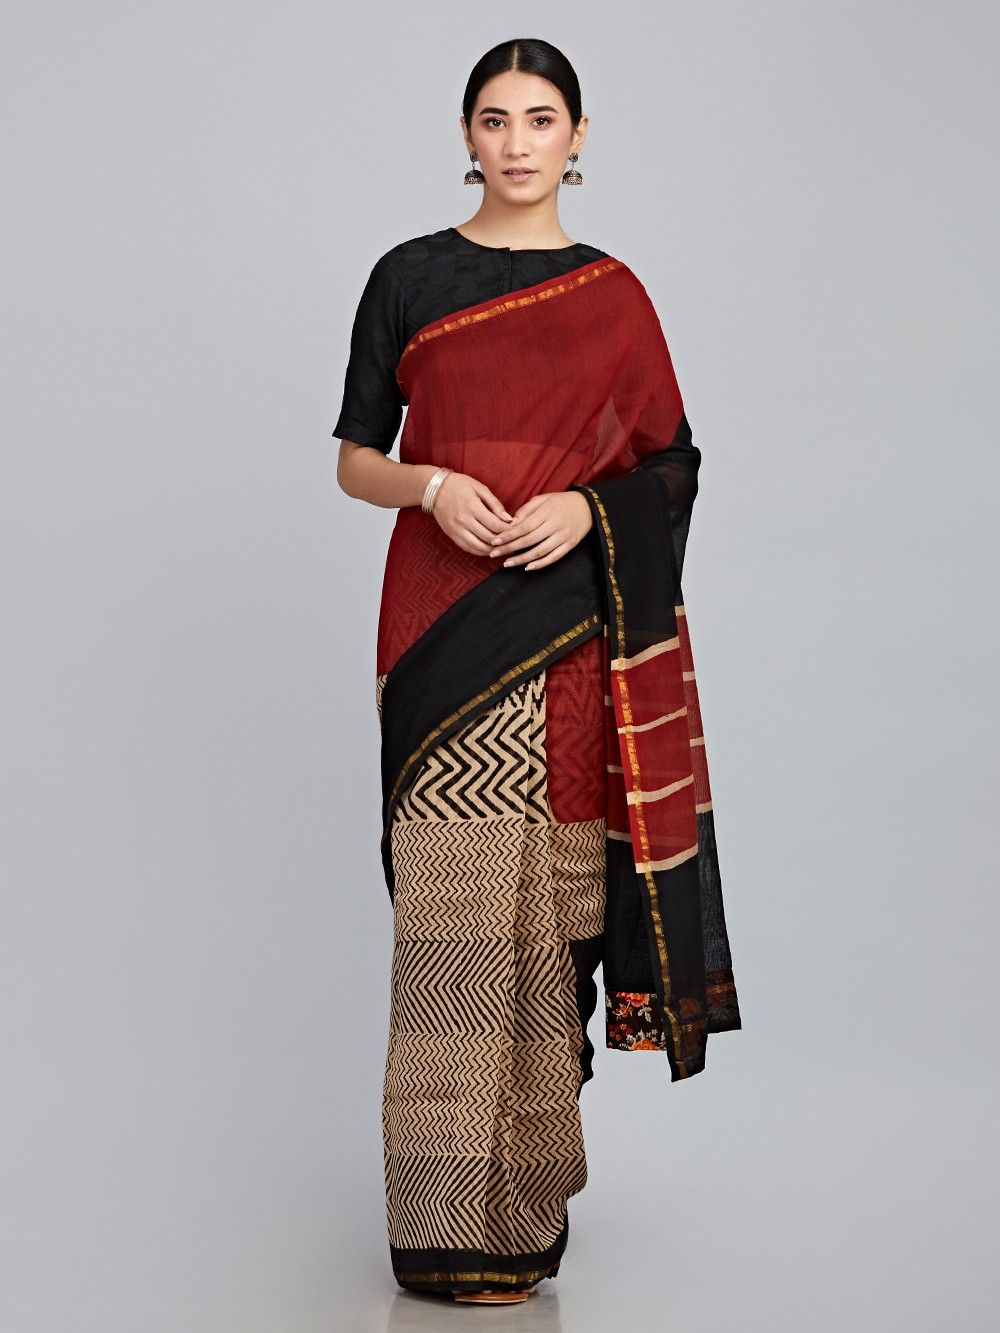 ad00d2e2f Buy Maroon Black Hand Block Printed Chanderi Silk Saree online at ...